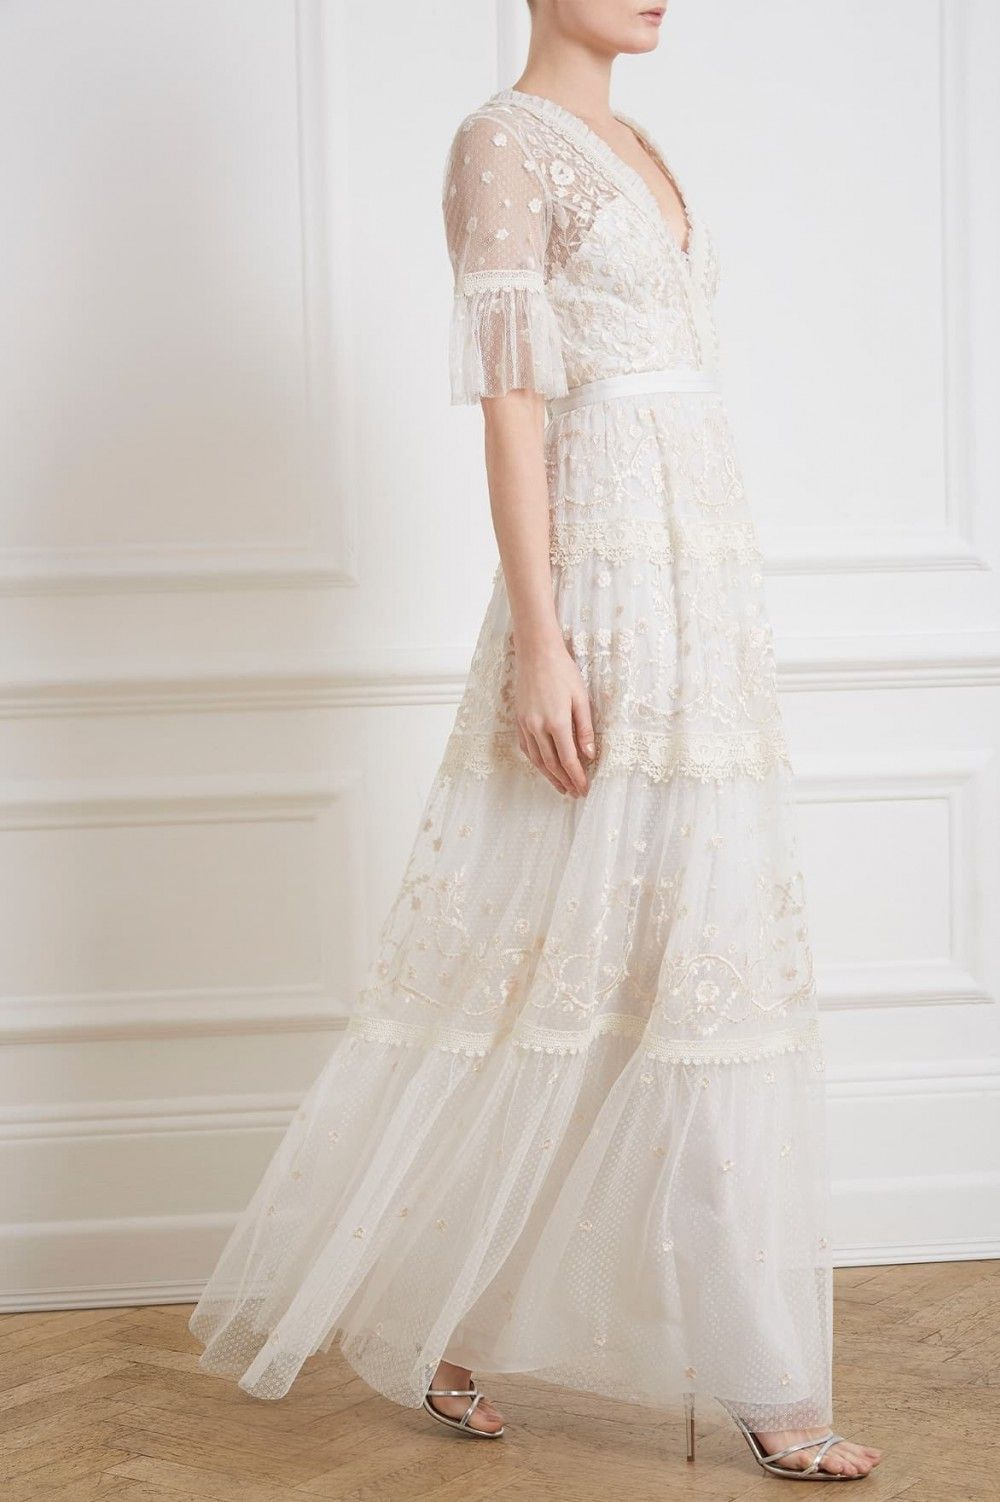 17 Seriously Cool Super Affordable Wedding Dresses Refinery29uk Needle And Thread Wedding Dresses Wedding Dresses Uk Needle And Thread Dresses